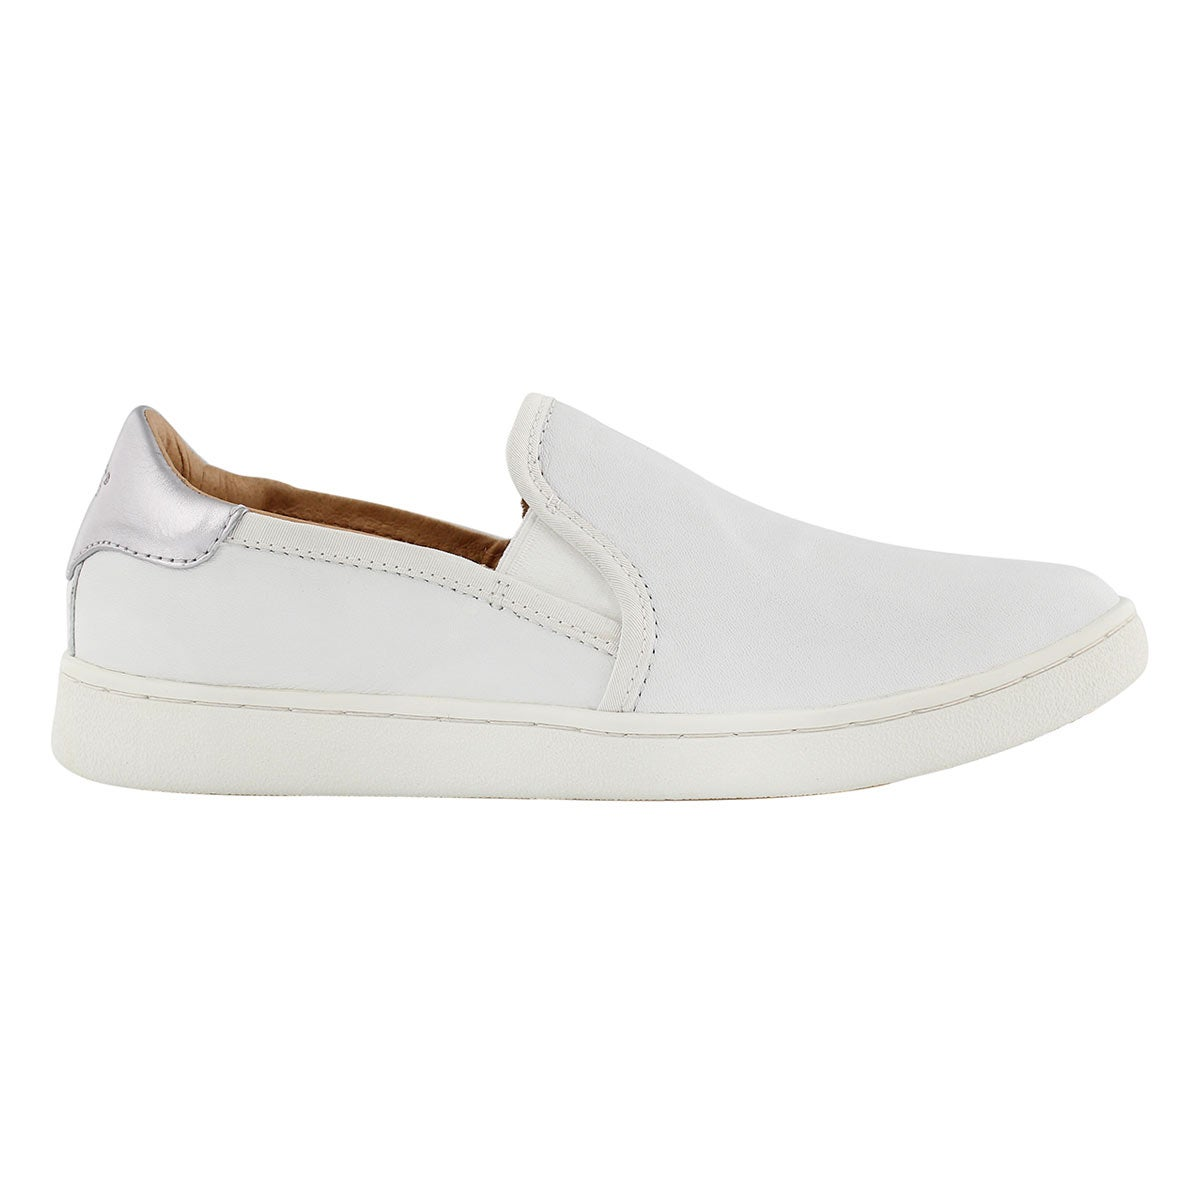 Lds Cas white lthr casual slip on shoe